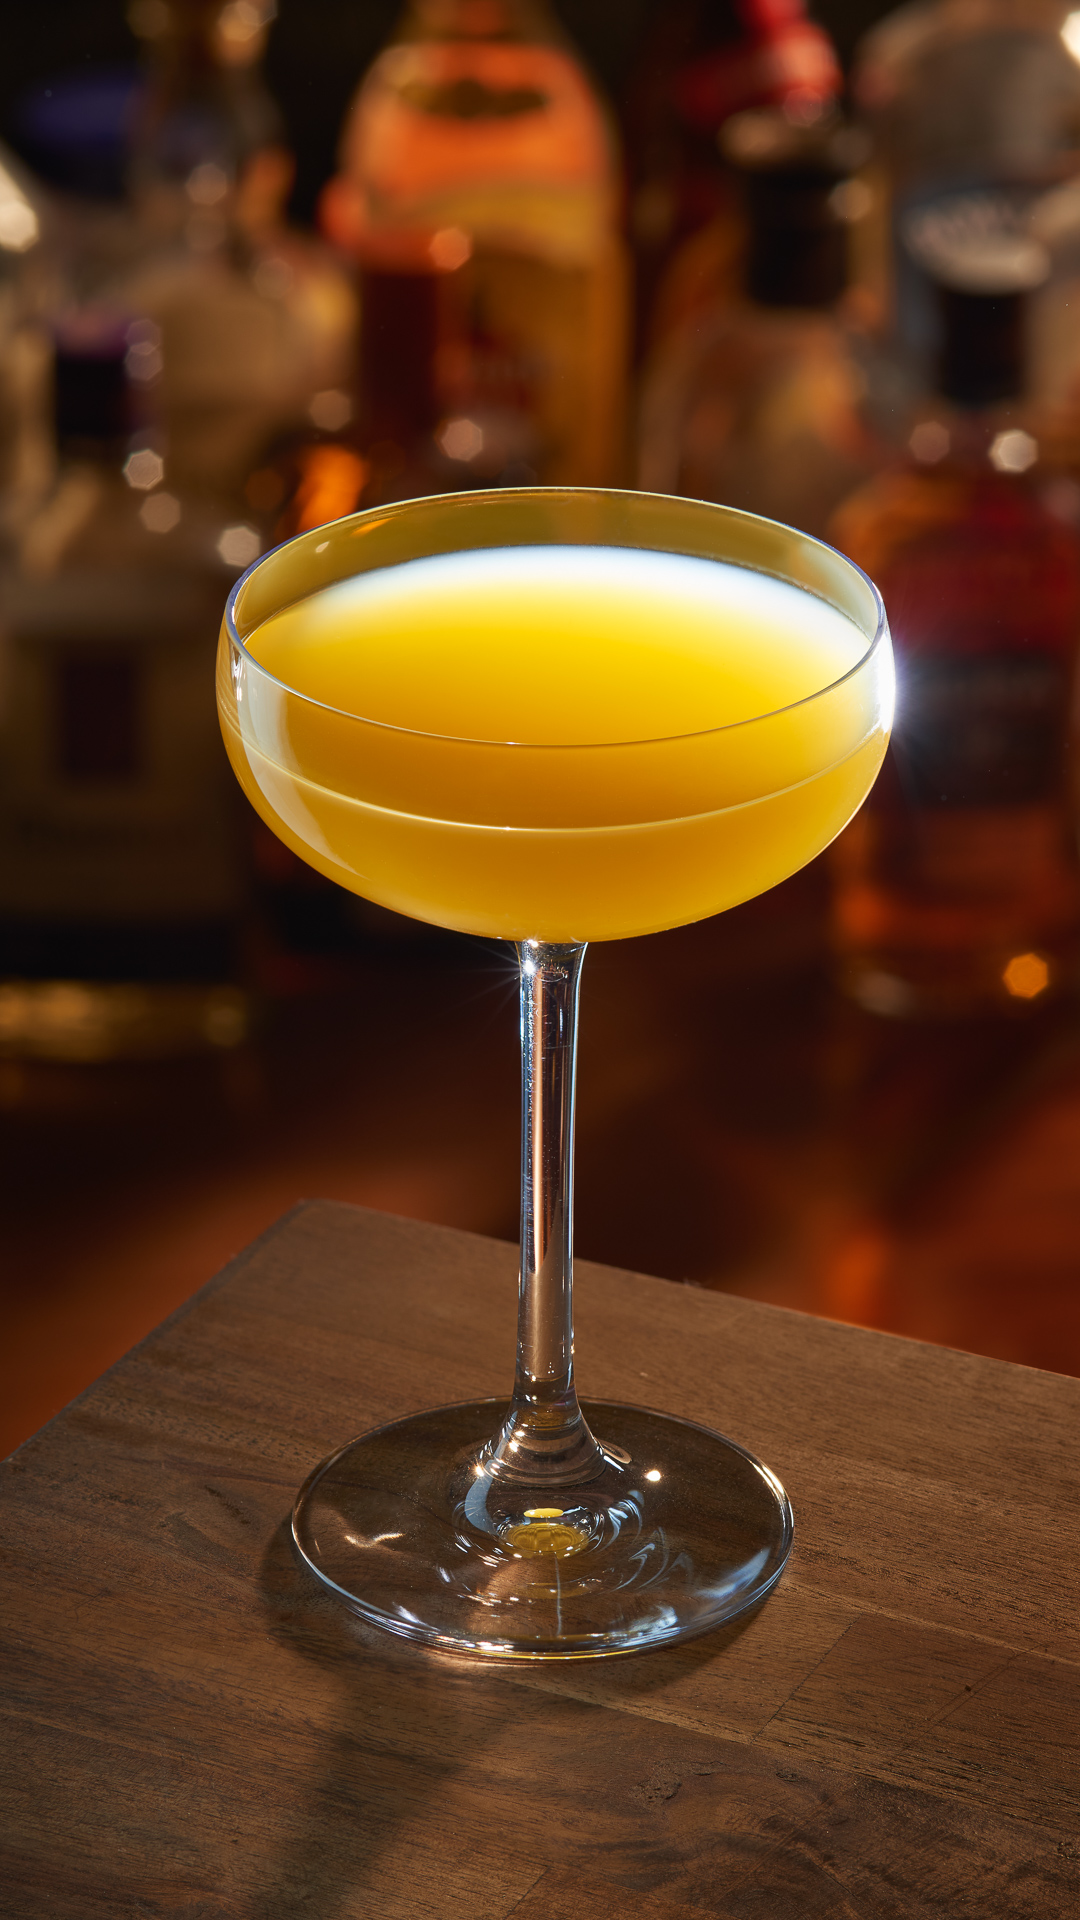 Yellow cocktail - food & beverage photography